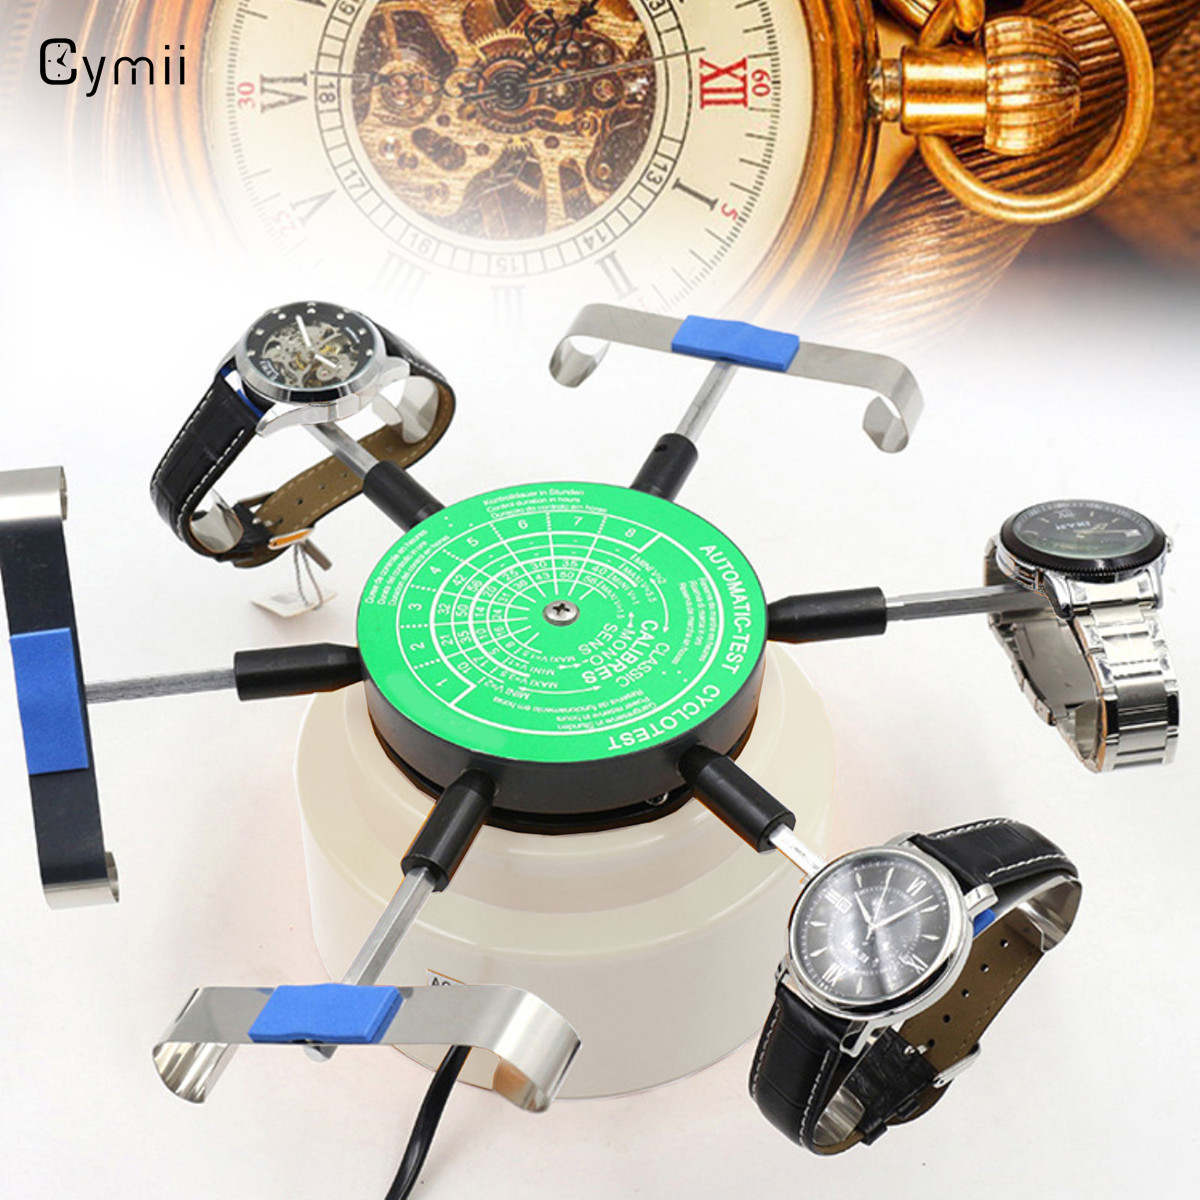 Cymii US Standard 110V-220V Professional Automic-Test Cyclotest Watches Tester Watch Test Machine Six Watches Position цена